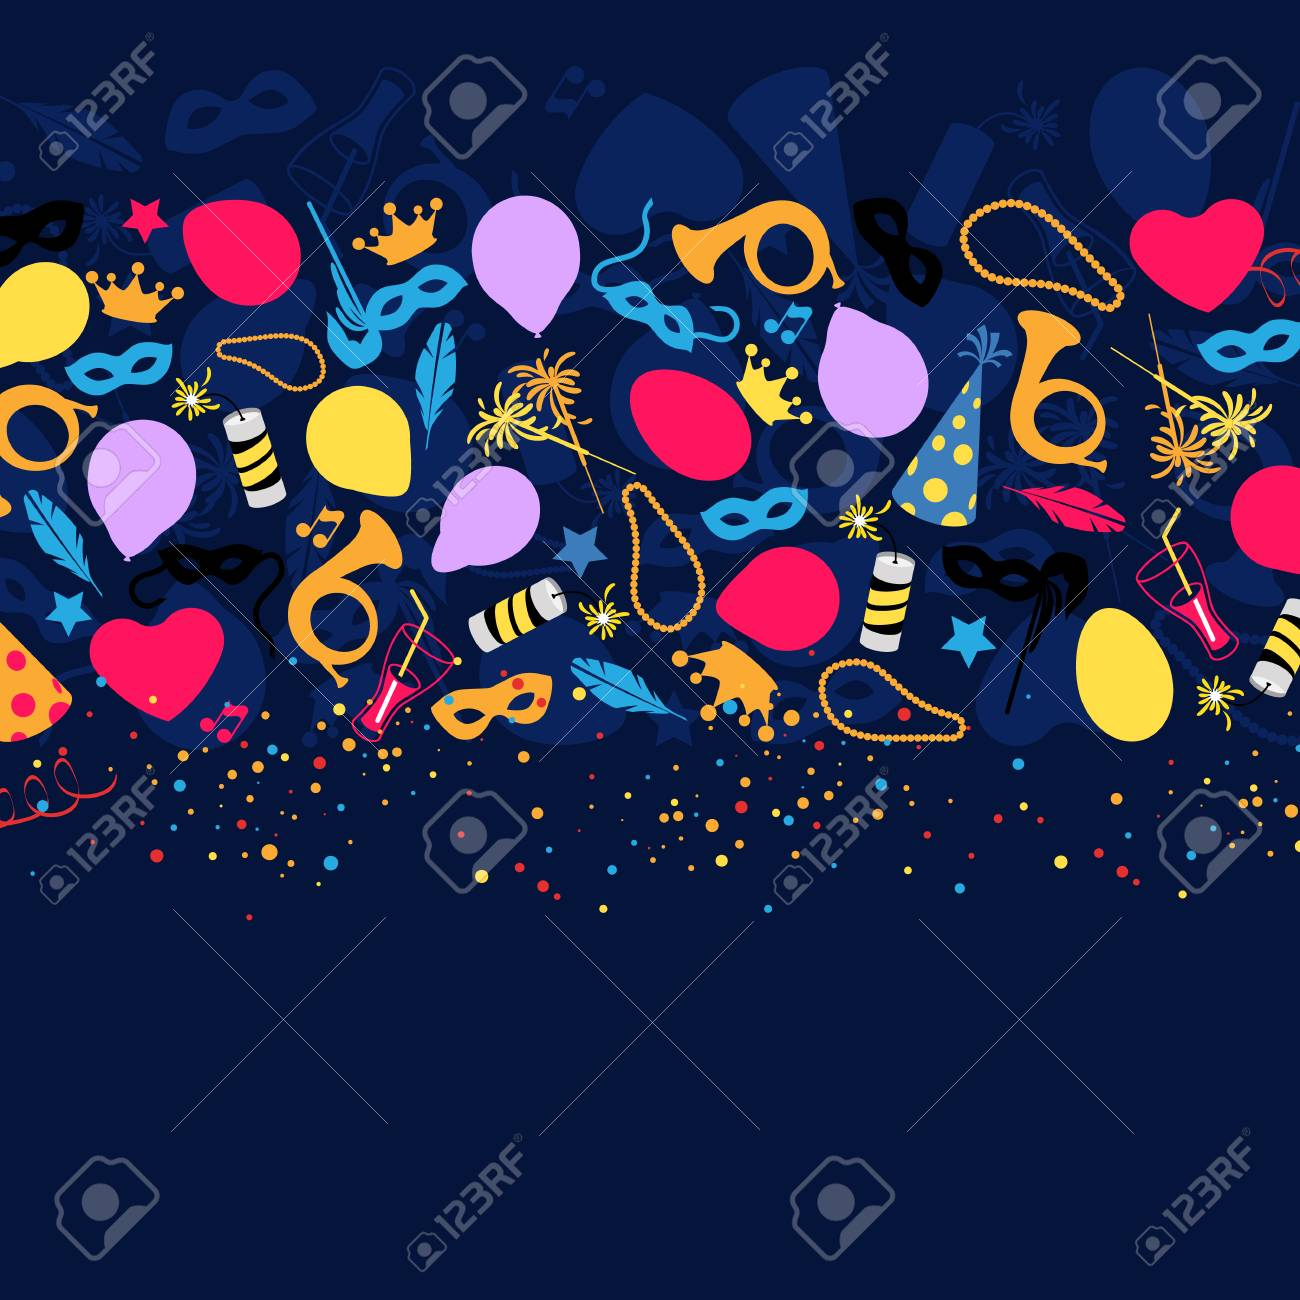 Carnival, Festival, Party, Birthday Decoration, Vector - 44037200